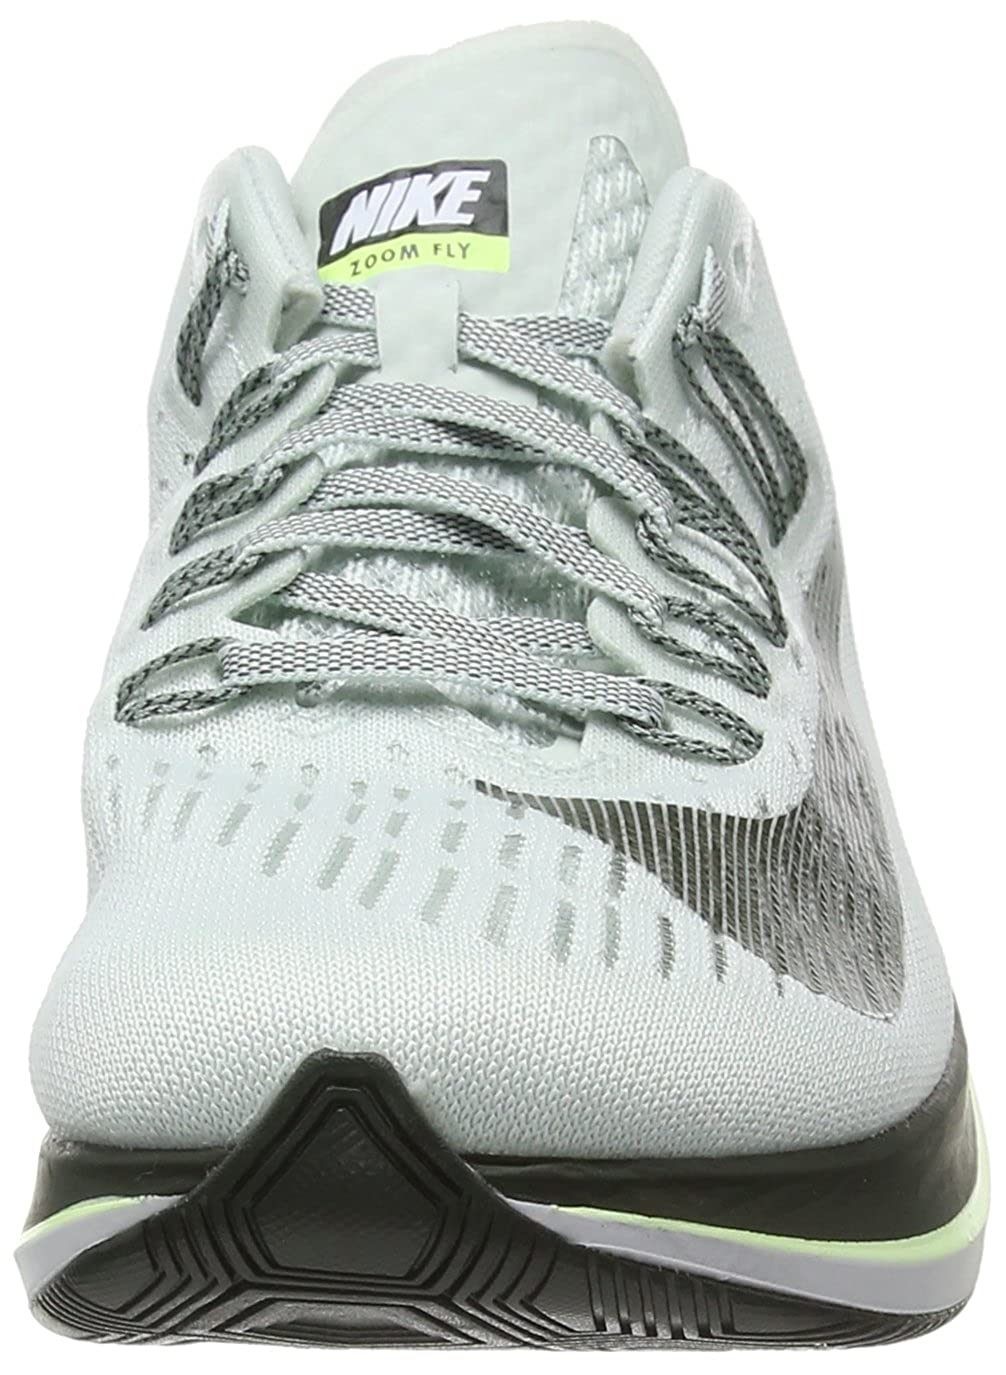 sports shoes aefb5 ca7b2 Amazon.com   Nike Women s WMNS Zoom Fly Trainers   Road Running